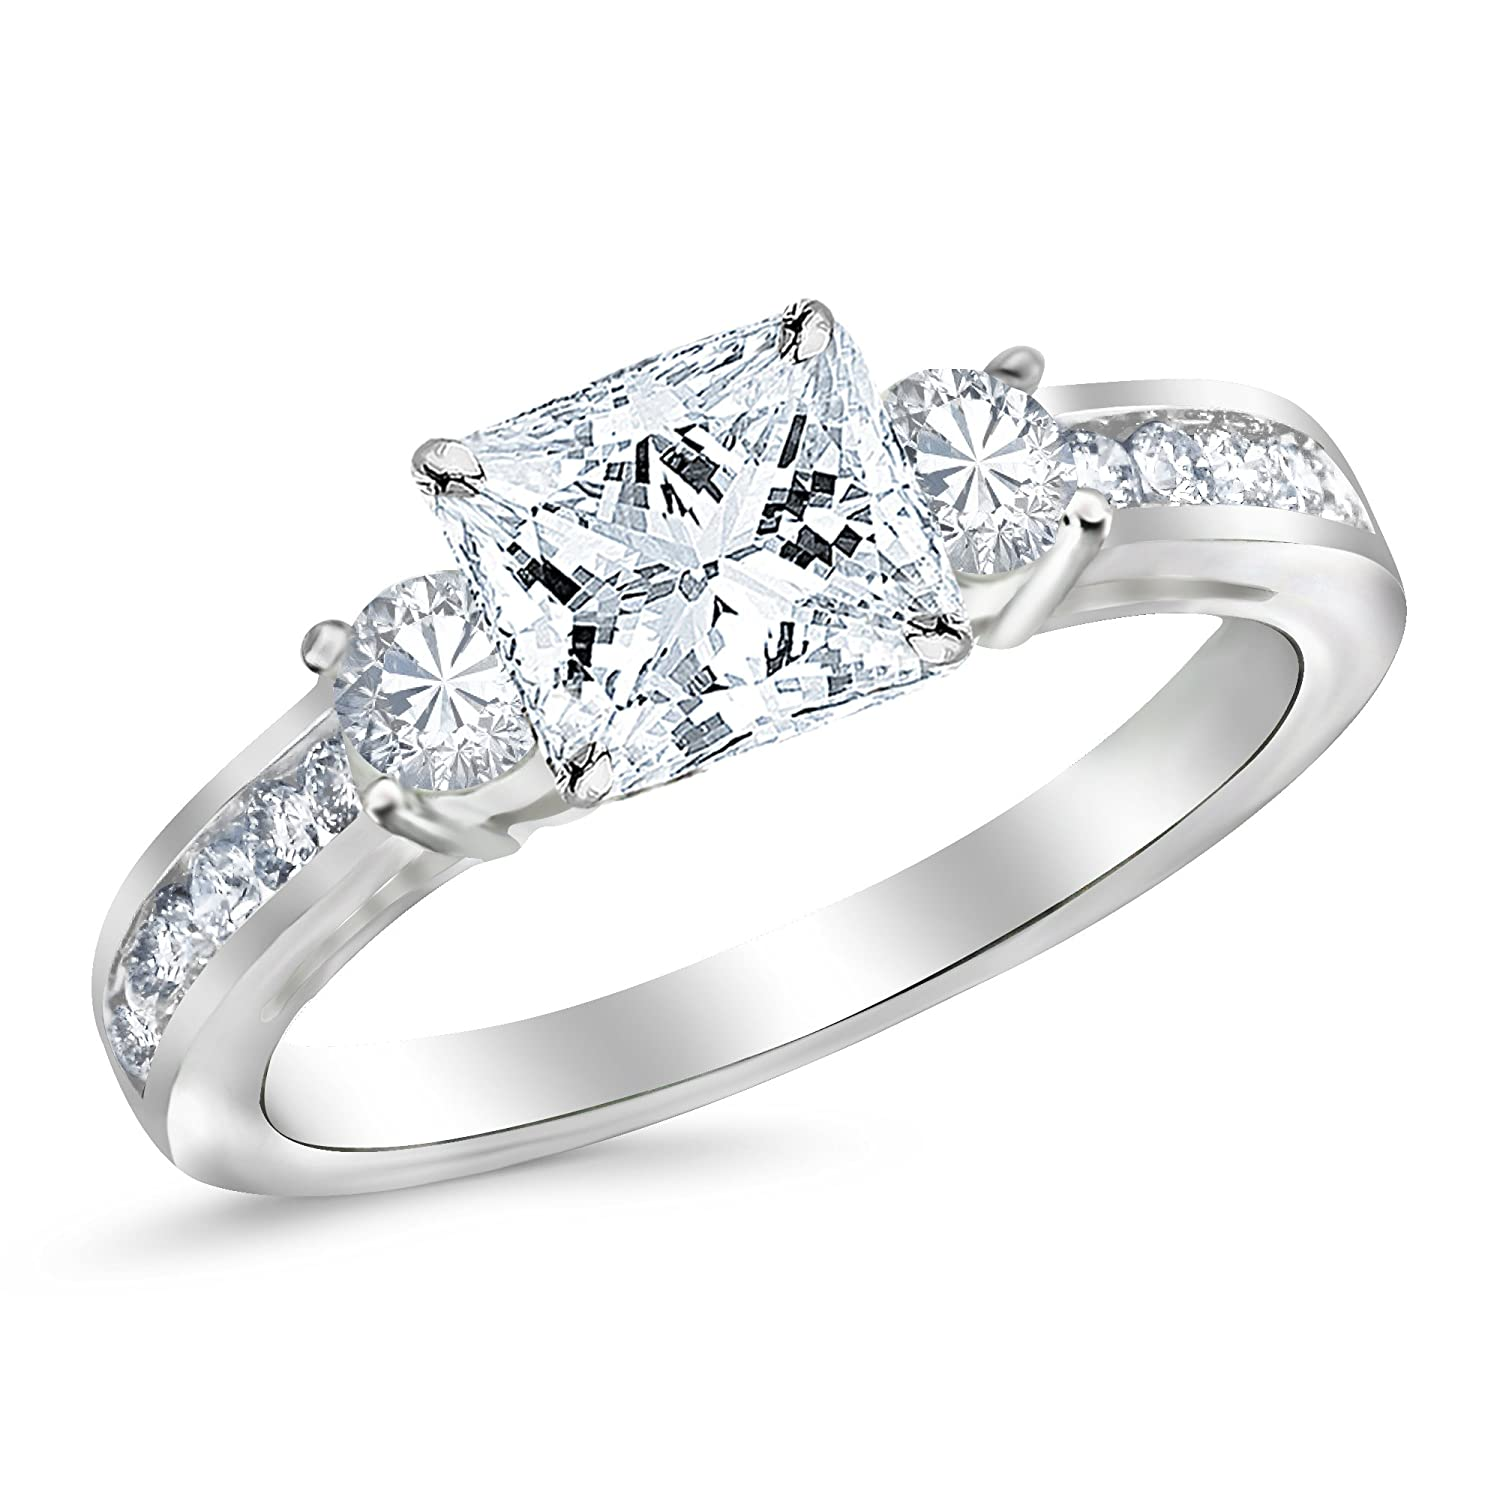 1.1 Carat 3 Stone Channel Set Princess Cut Diamond Engagement Ring with a  0.5 Carat GIA Certified Princess Cut E Color VS1 Clarity Center Stone  55fa98a37c88